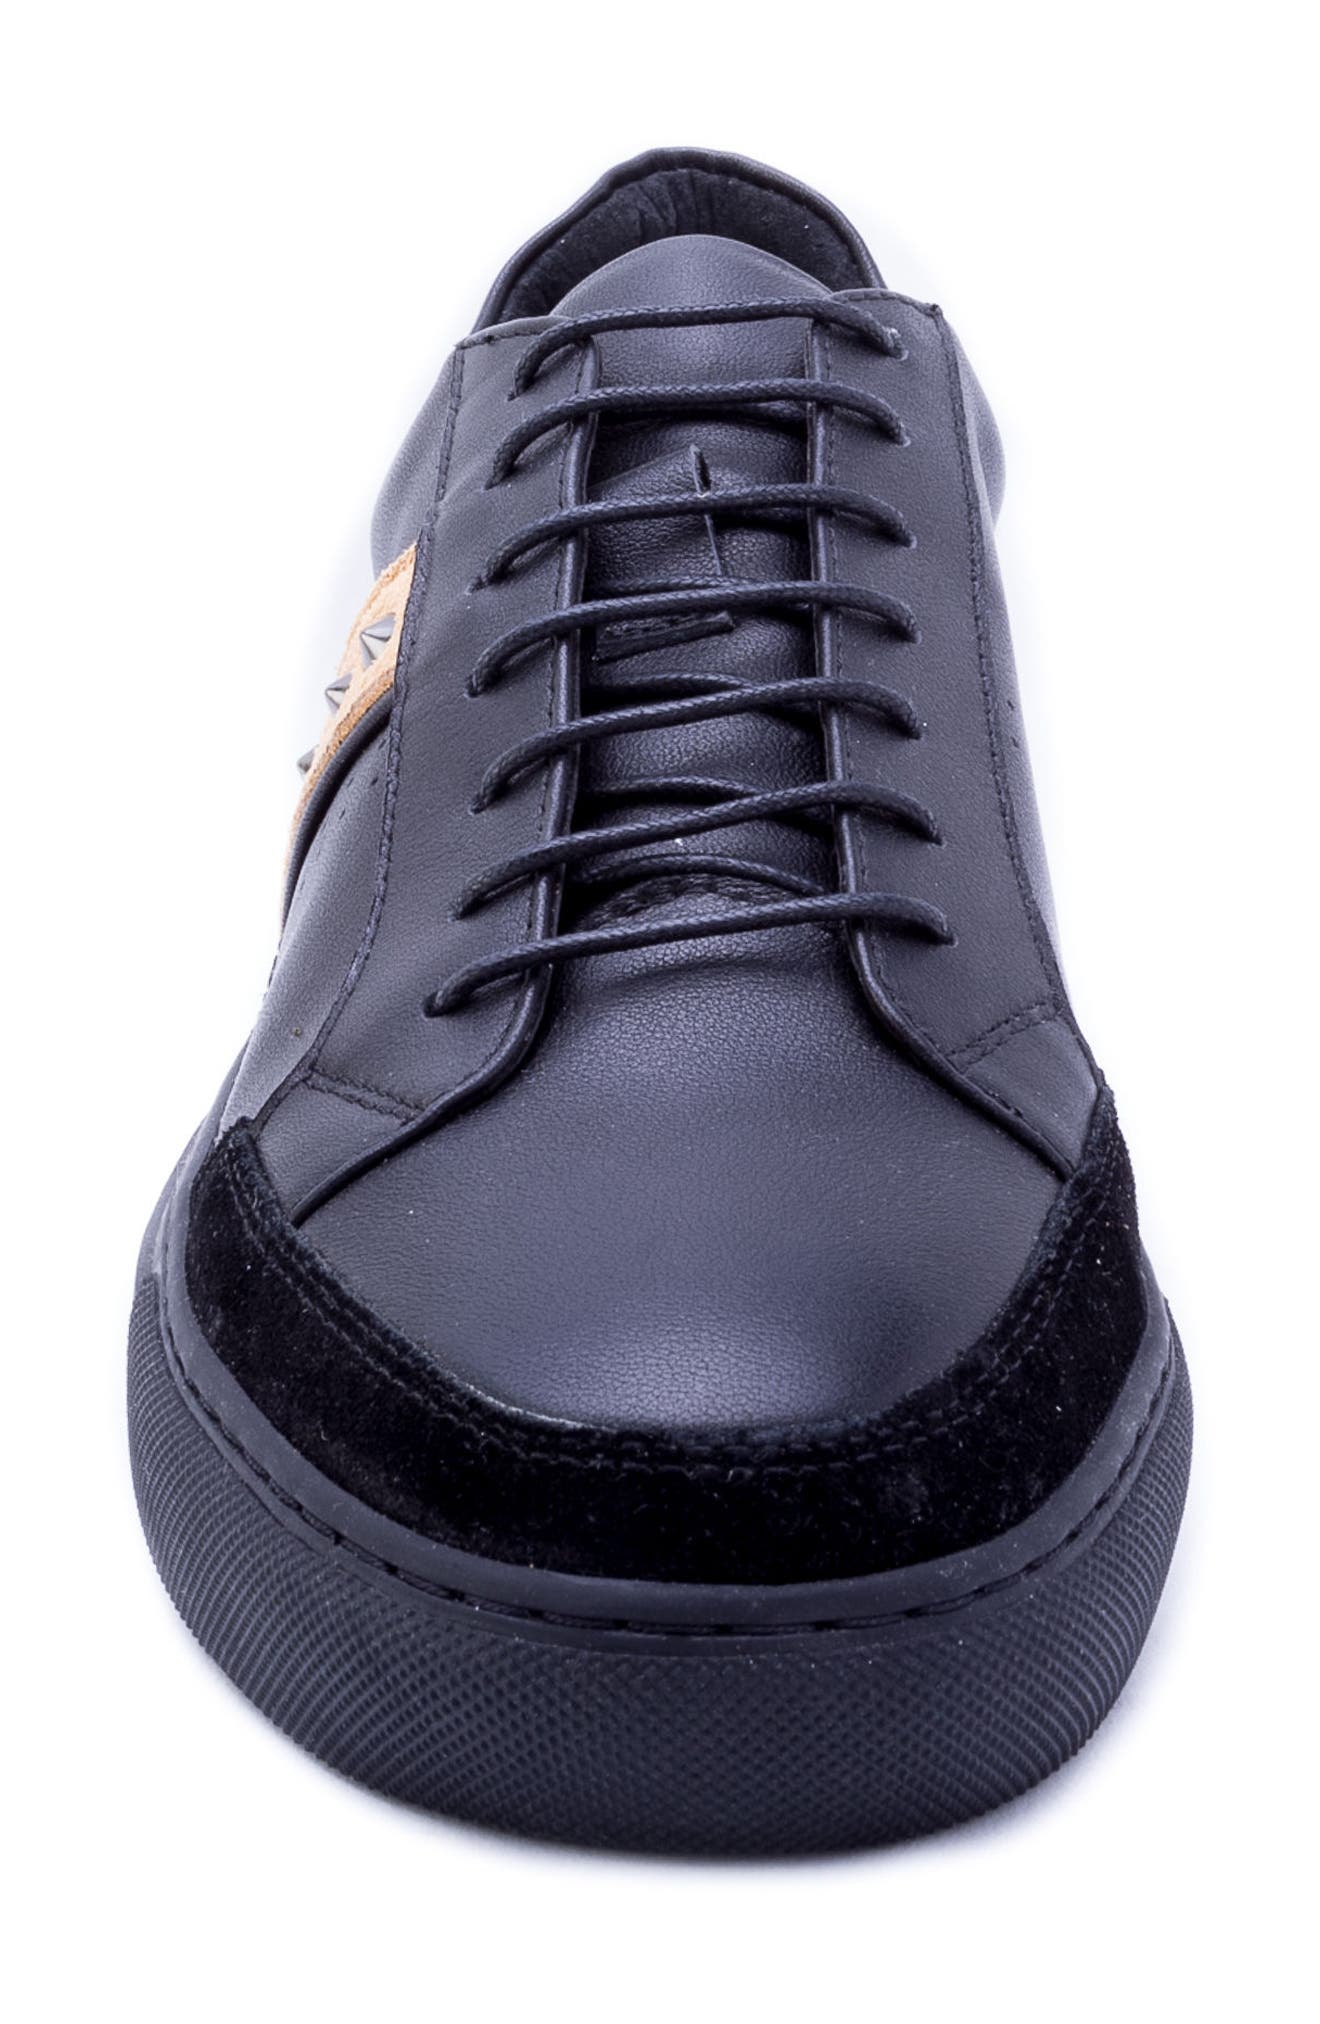 Connery Sneaker,                             Alternate thumbnail 4, color,                             BLACK LEATHER